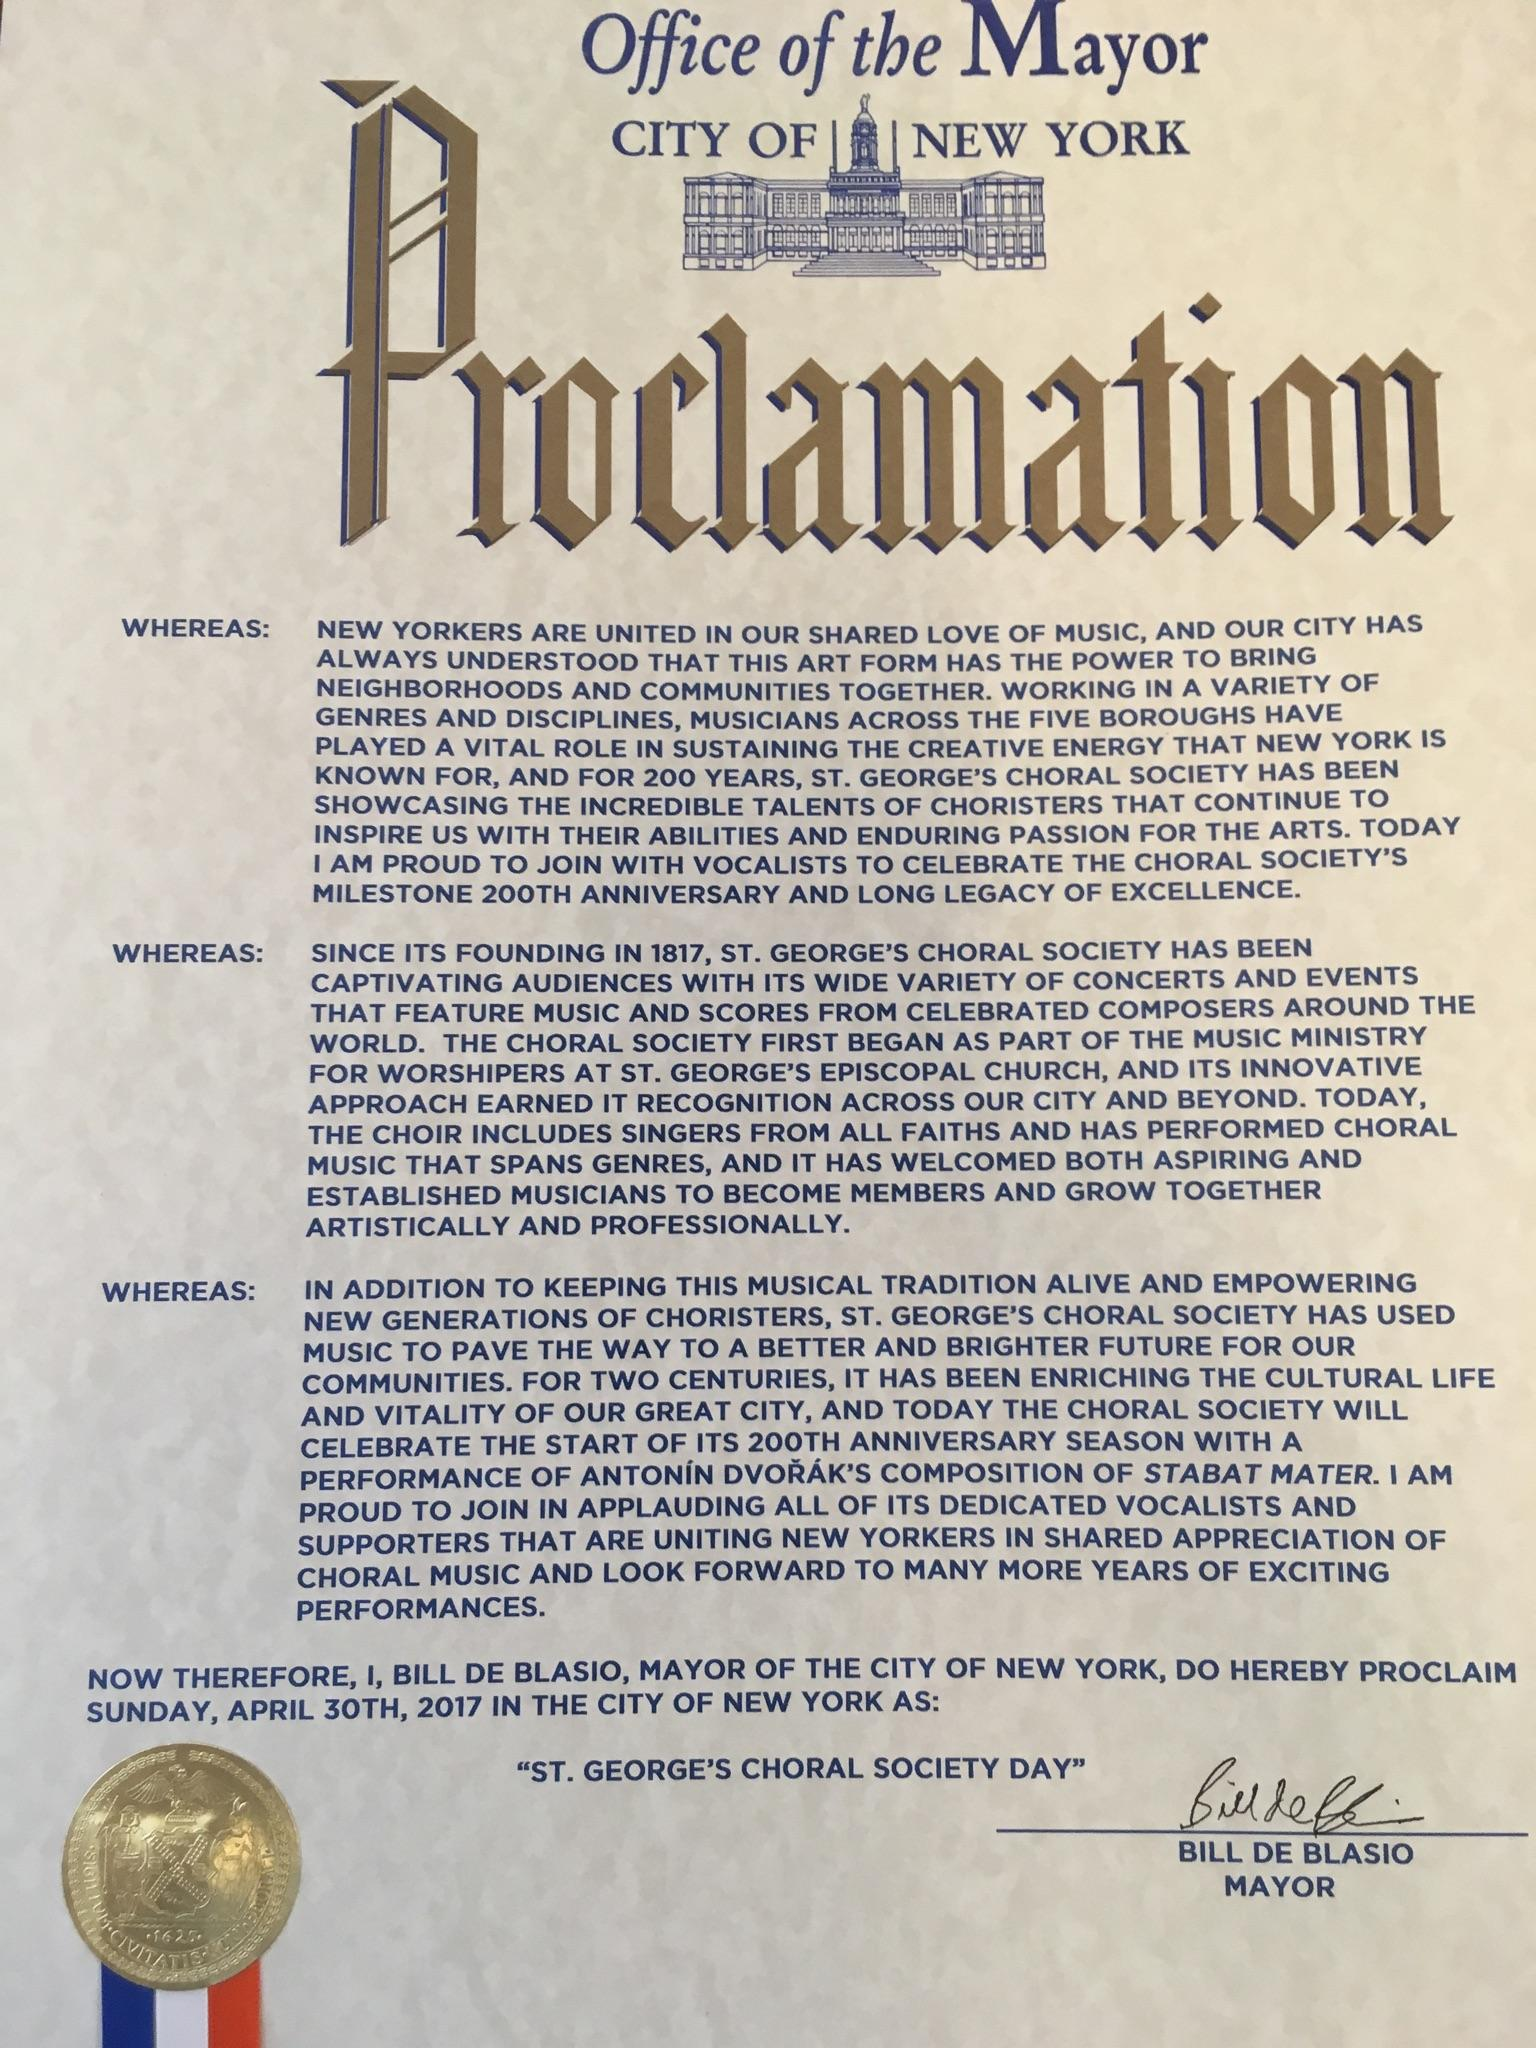 The Proclamation. Click to enlarge.